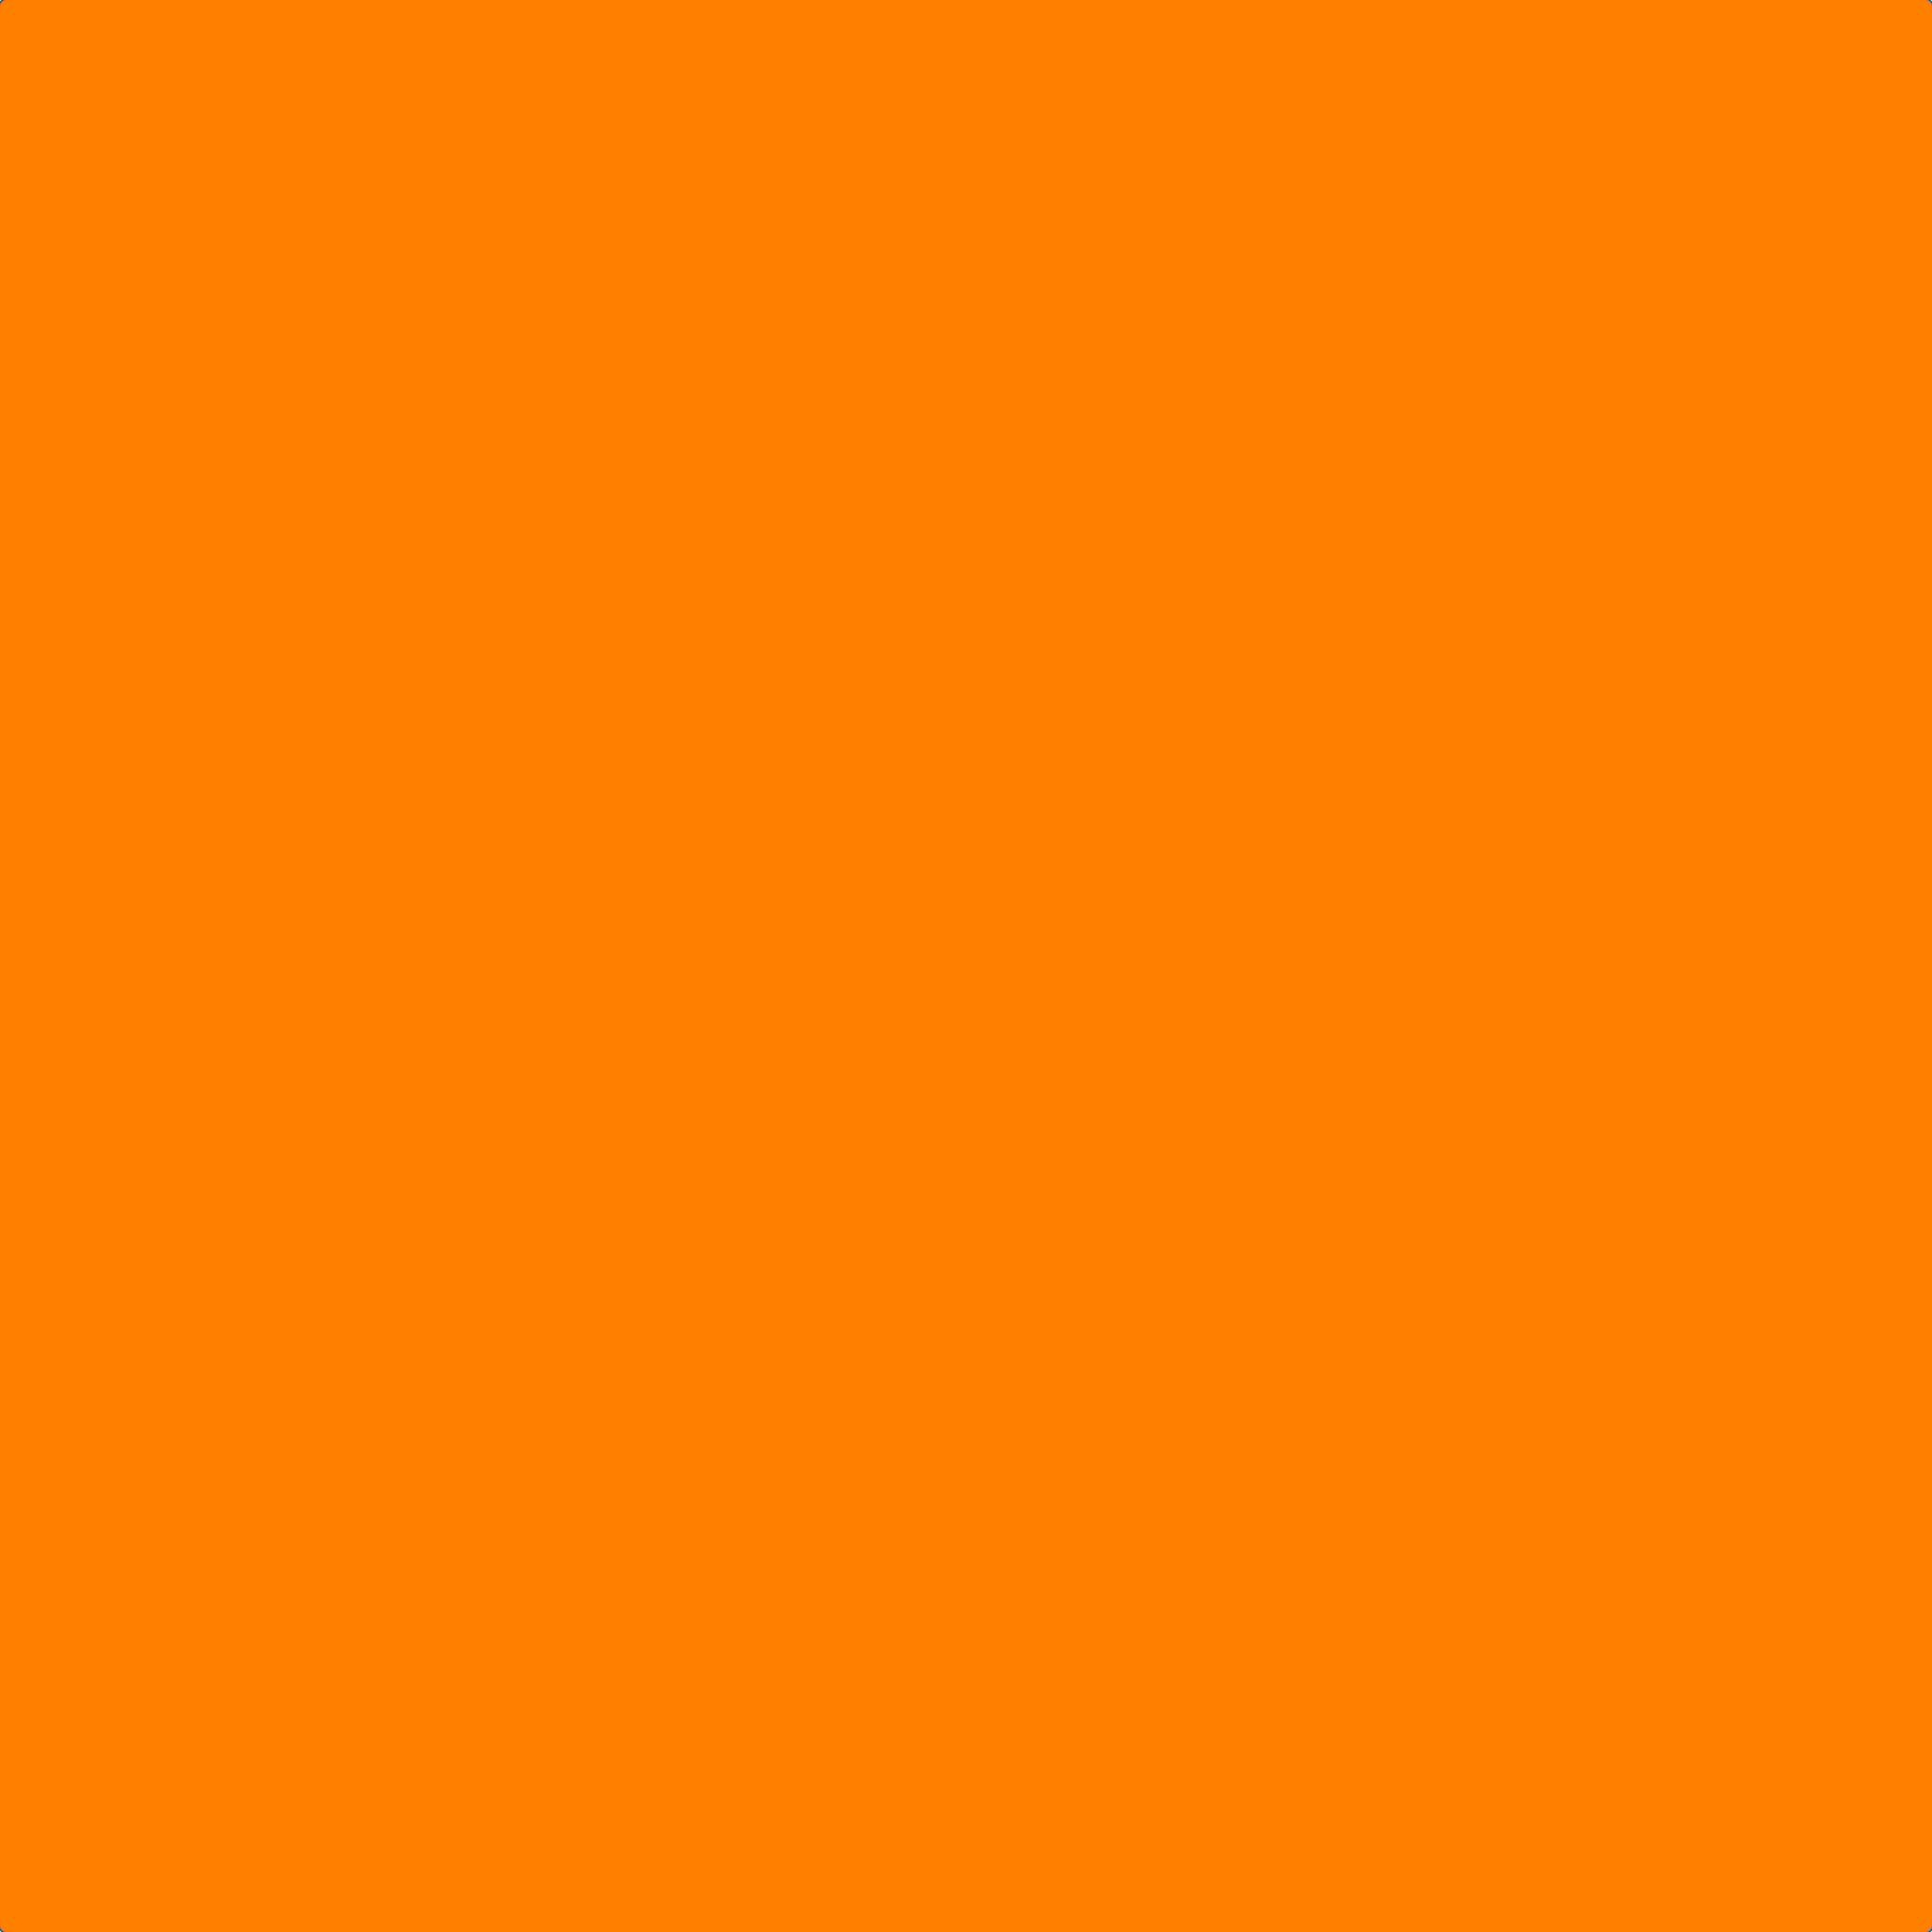 Wallpapers For > Solid Neon Orange Background